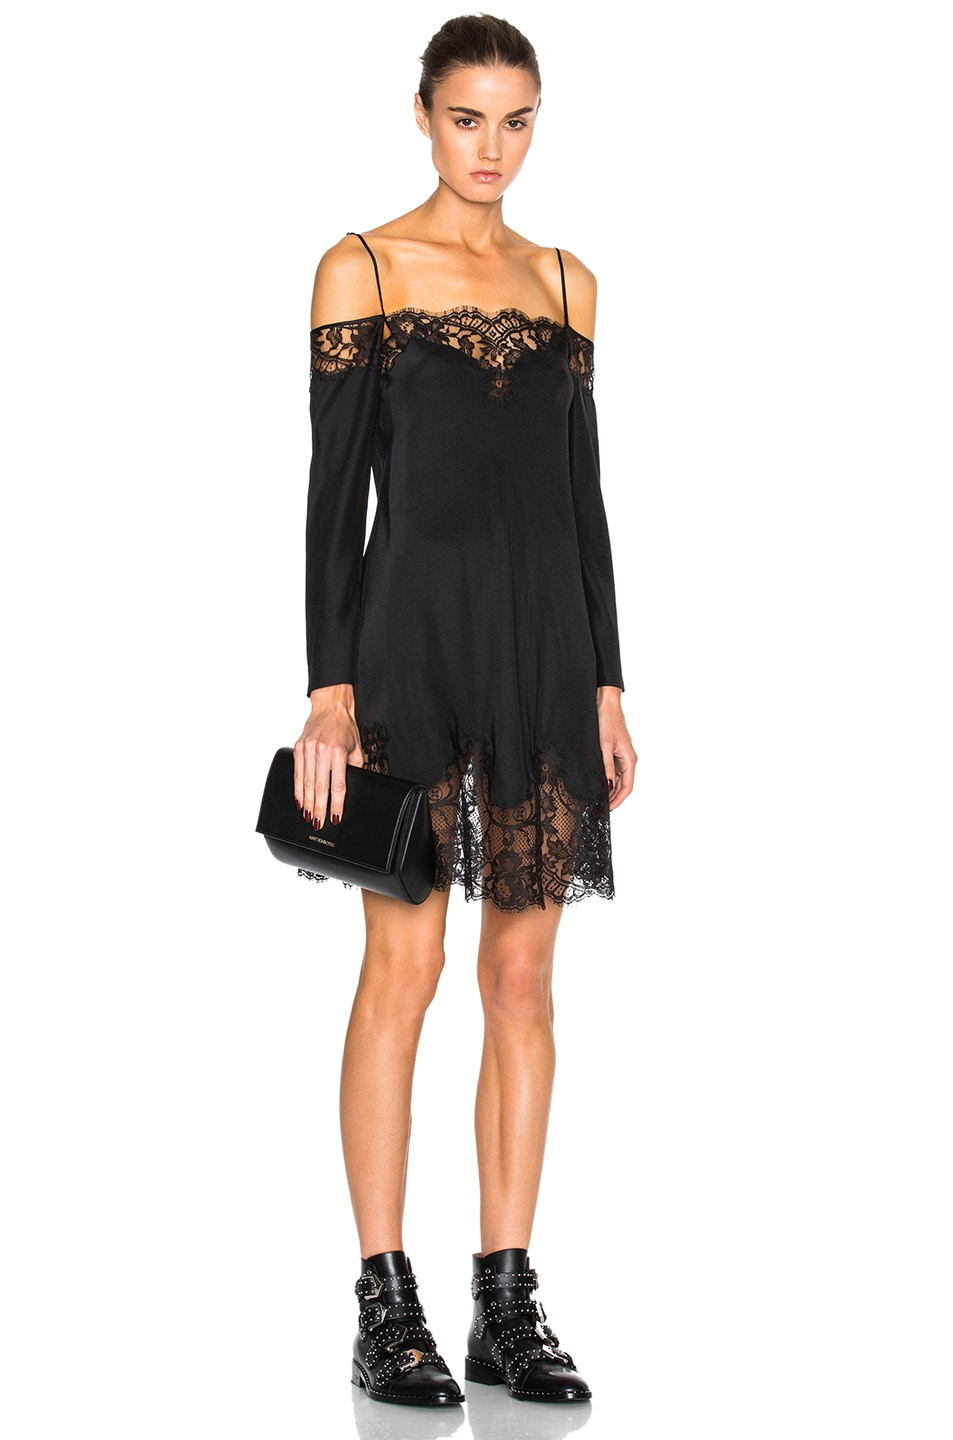 Givenchy FWRD Exclusive Off the Shoulder Silk Satin Dress in Black